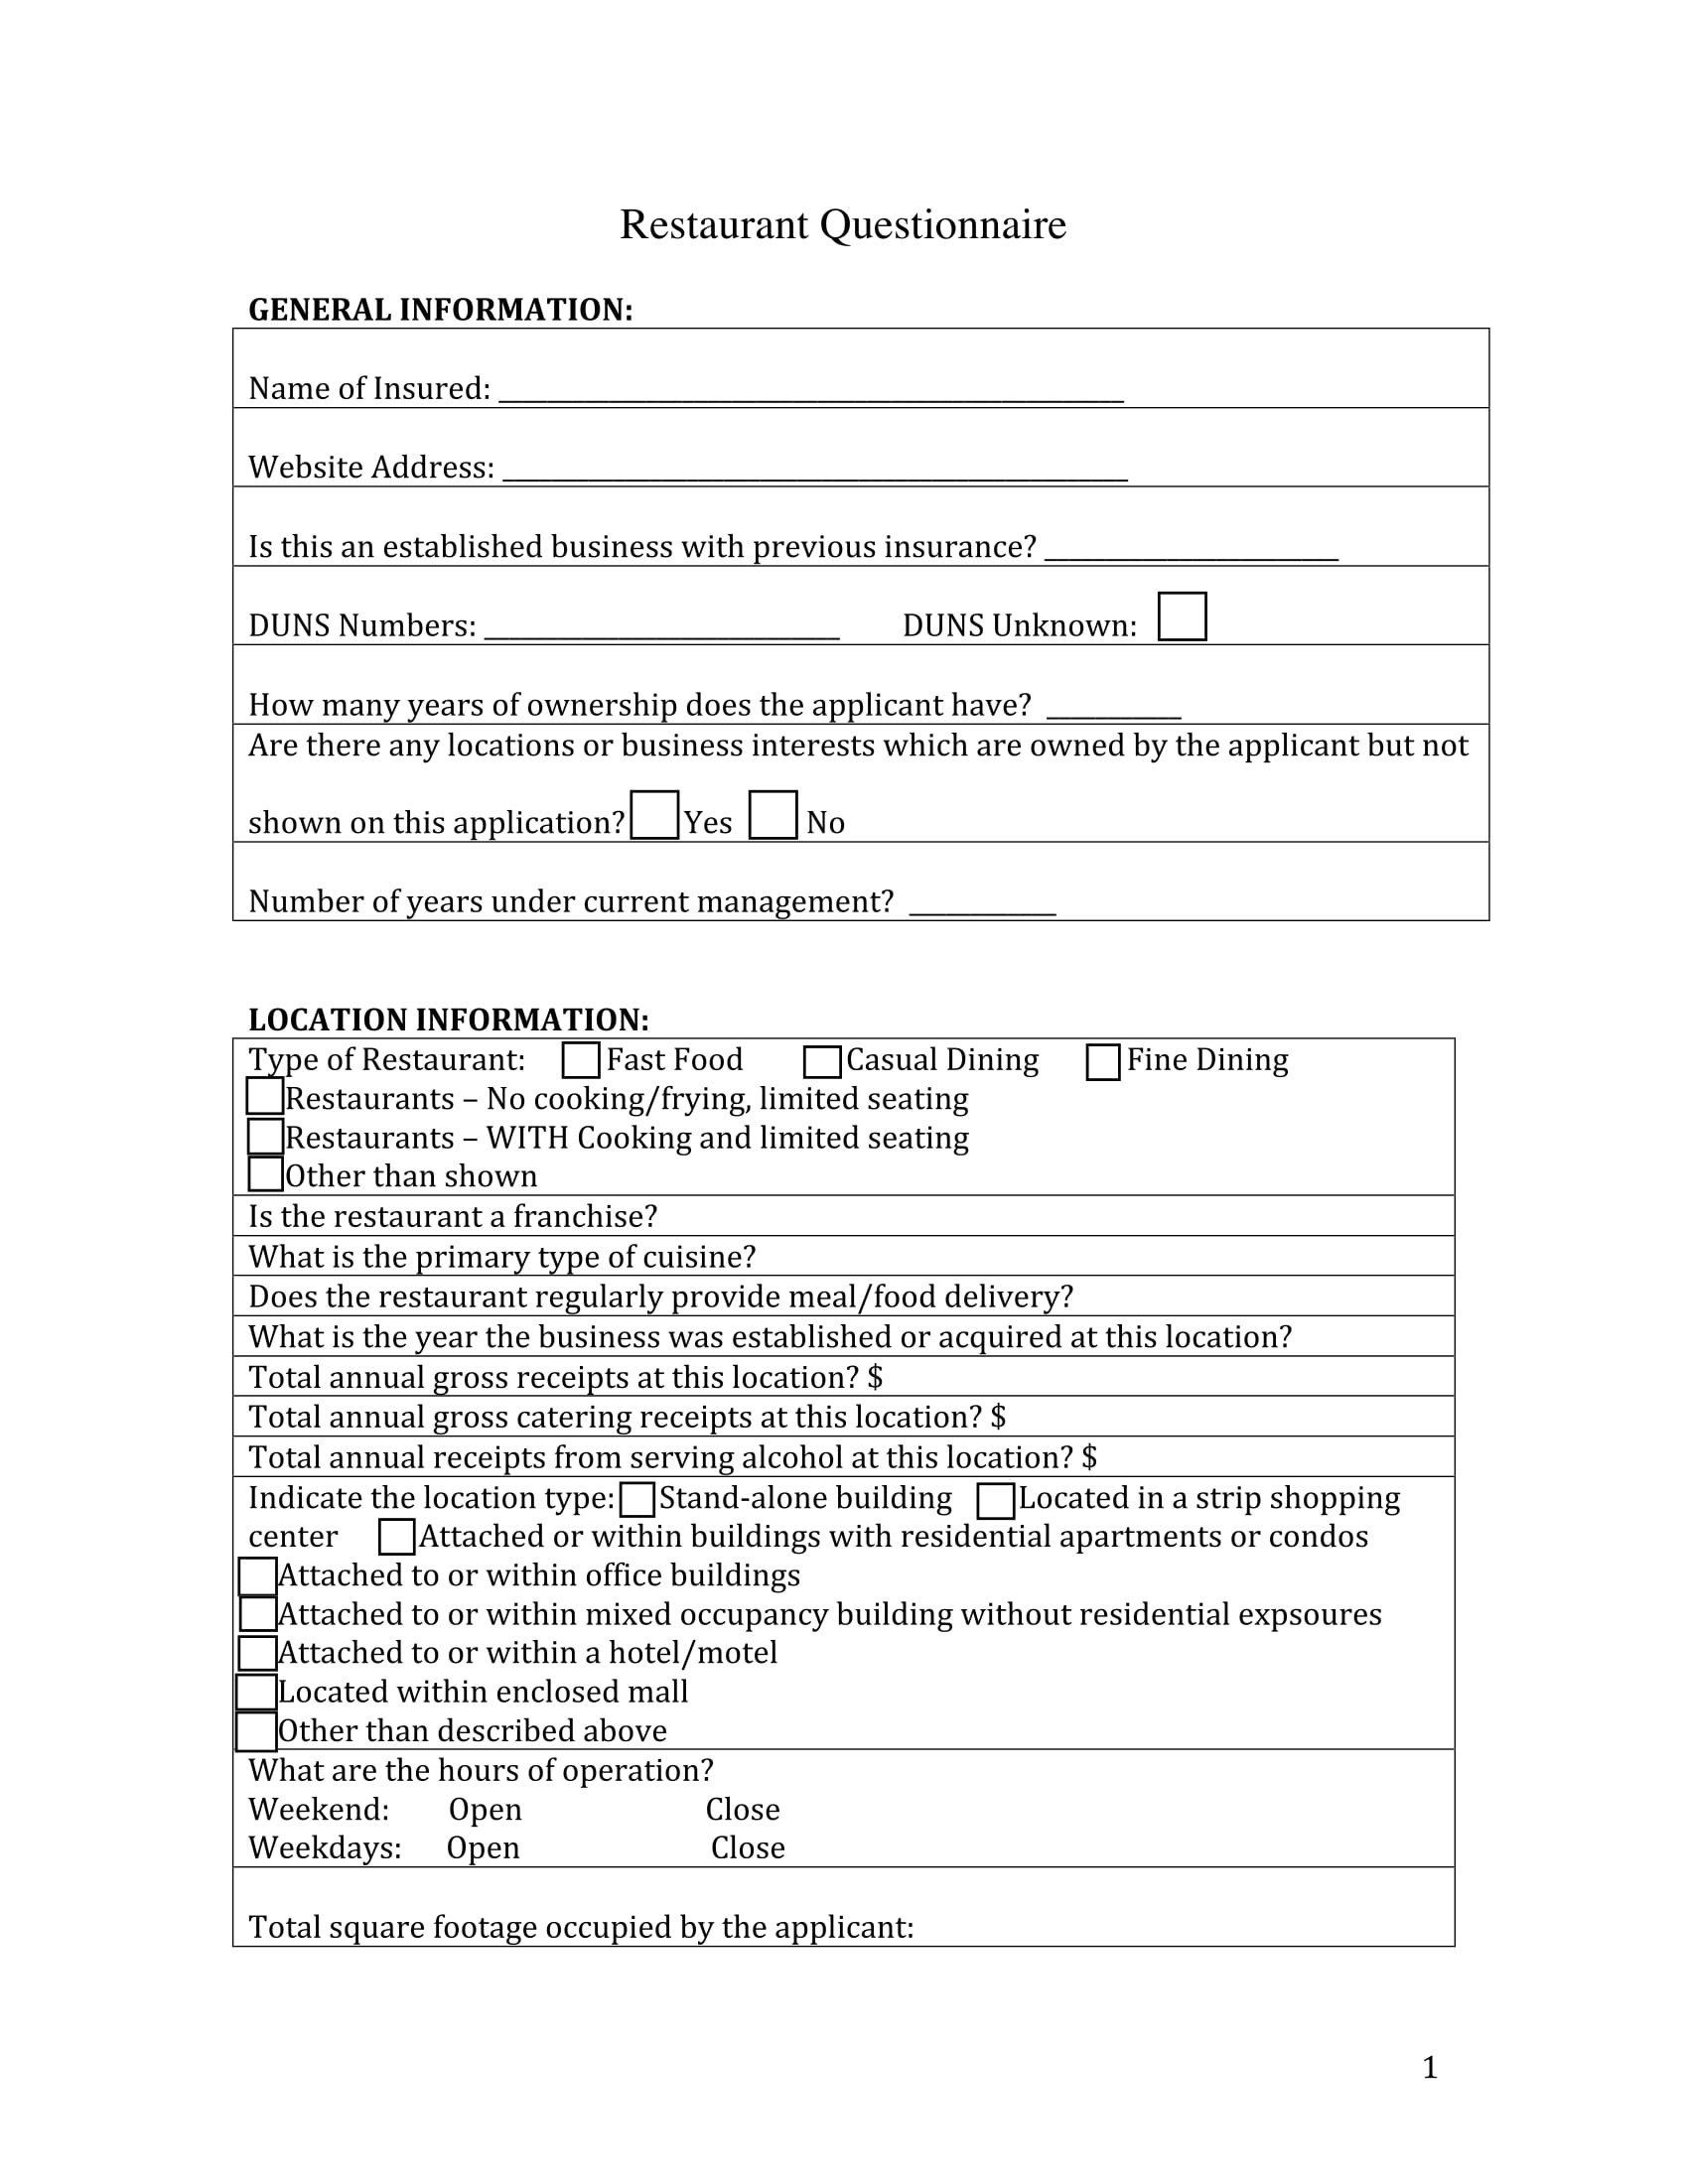 restaurant questionnaire form sample 1